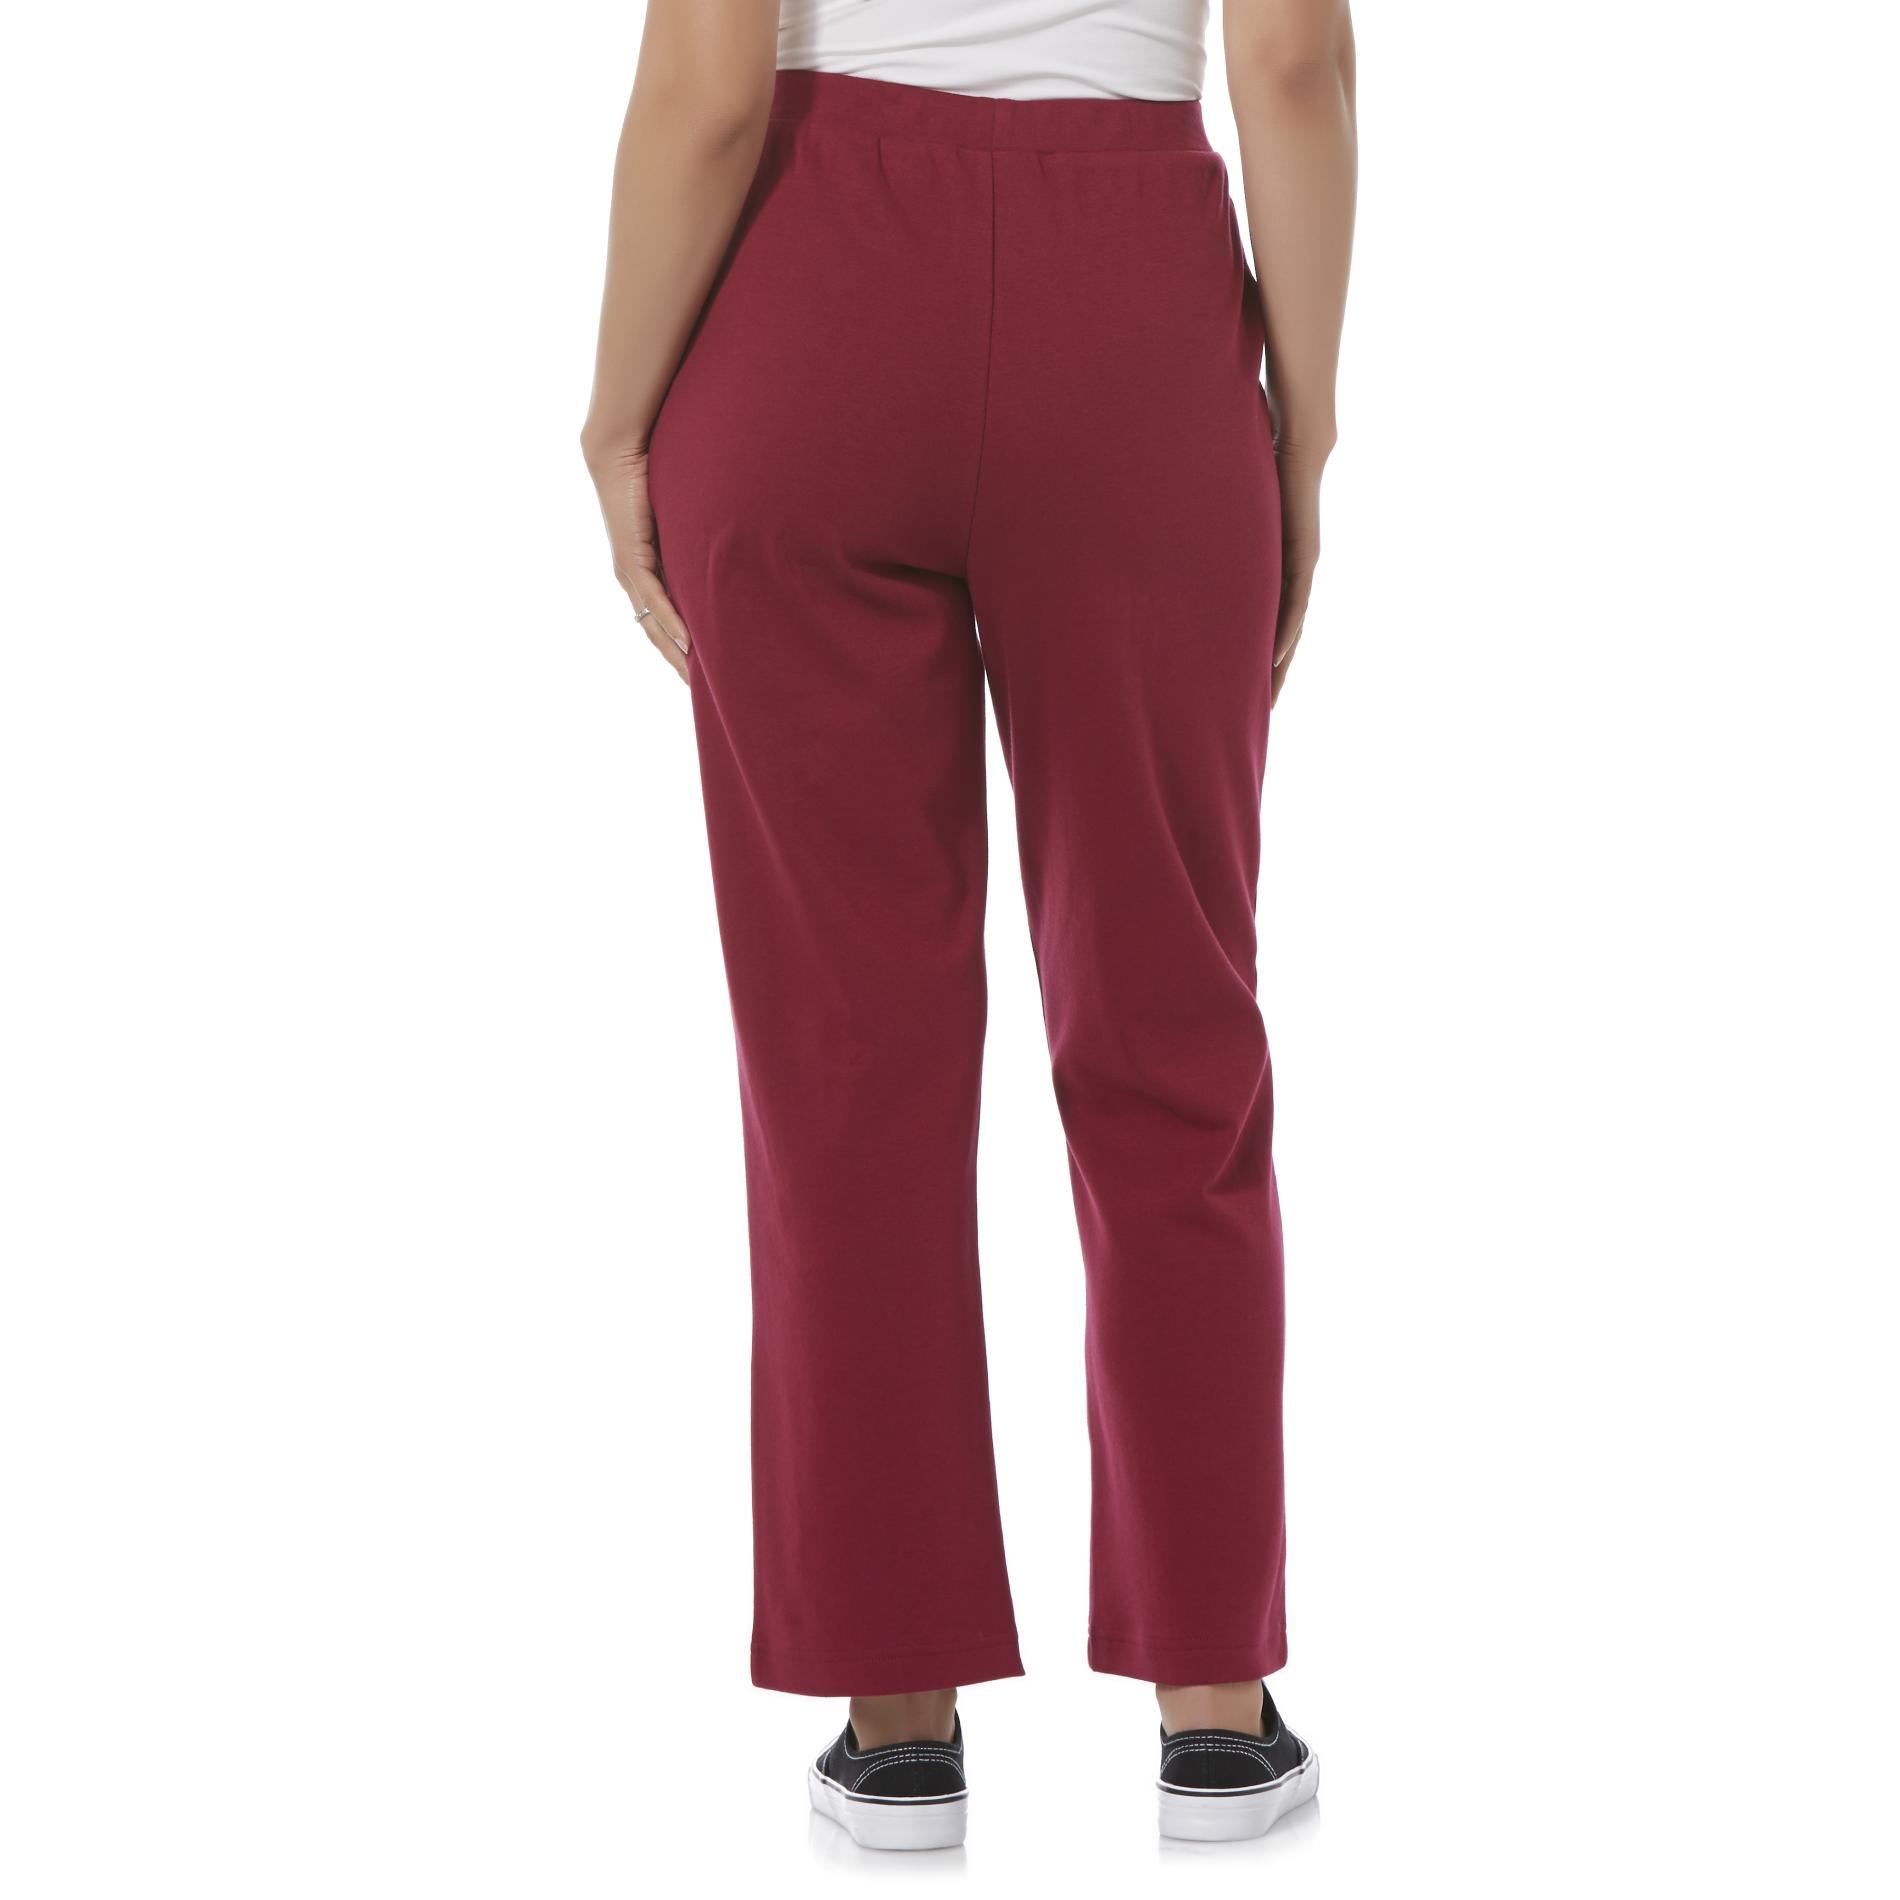 Laura Scott Petite's Knit Pants